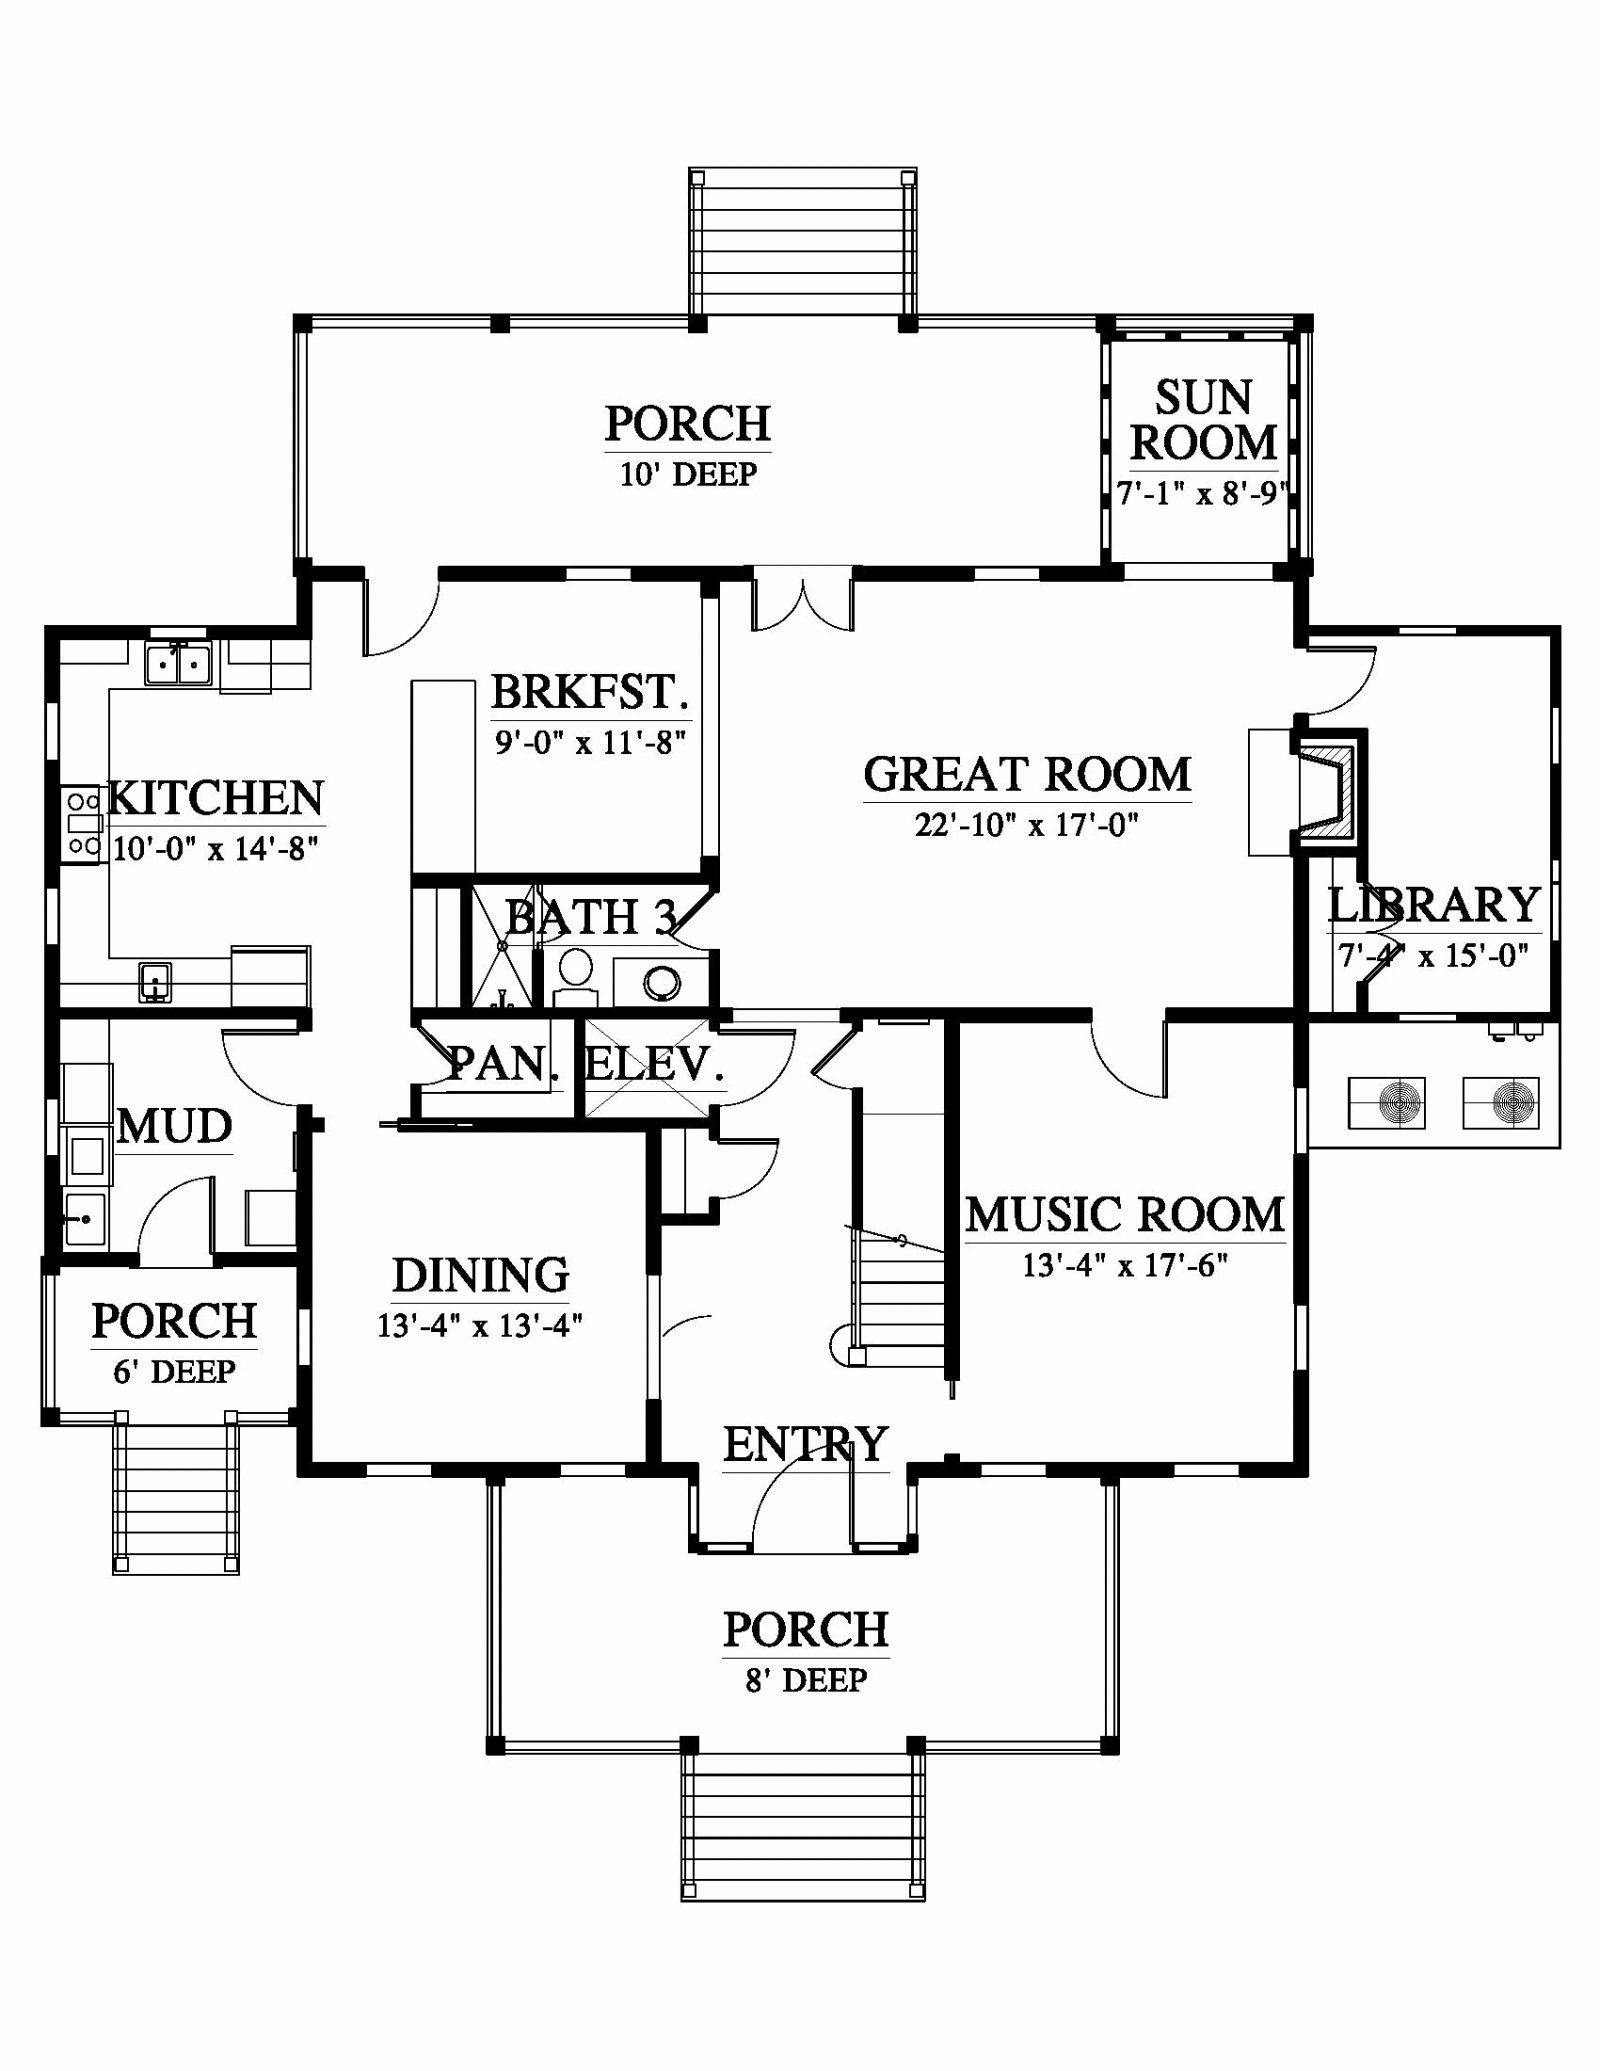 23 Ranch Floor Plans With Walkout Basement 25 Awesome 1500 Square Feet House Plan Architectur In 2020 Haus Grundriss Haus Plane Moderne Hausgrundrisse